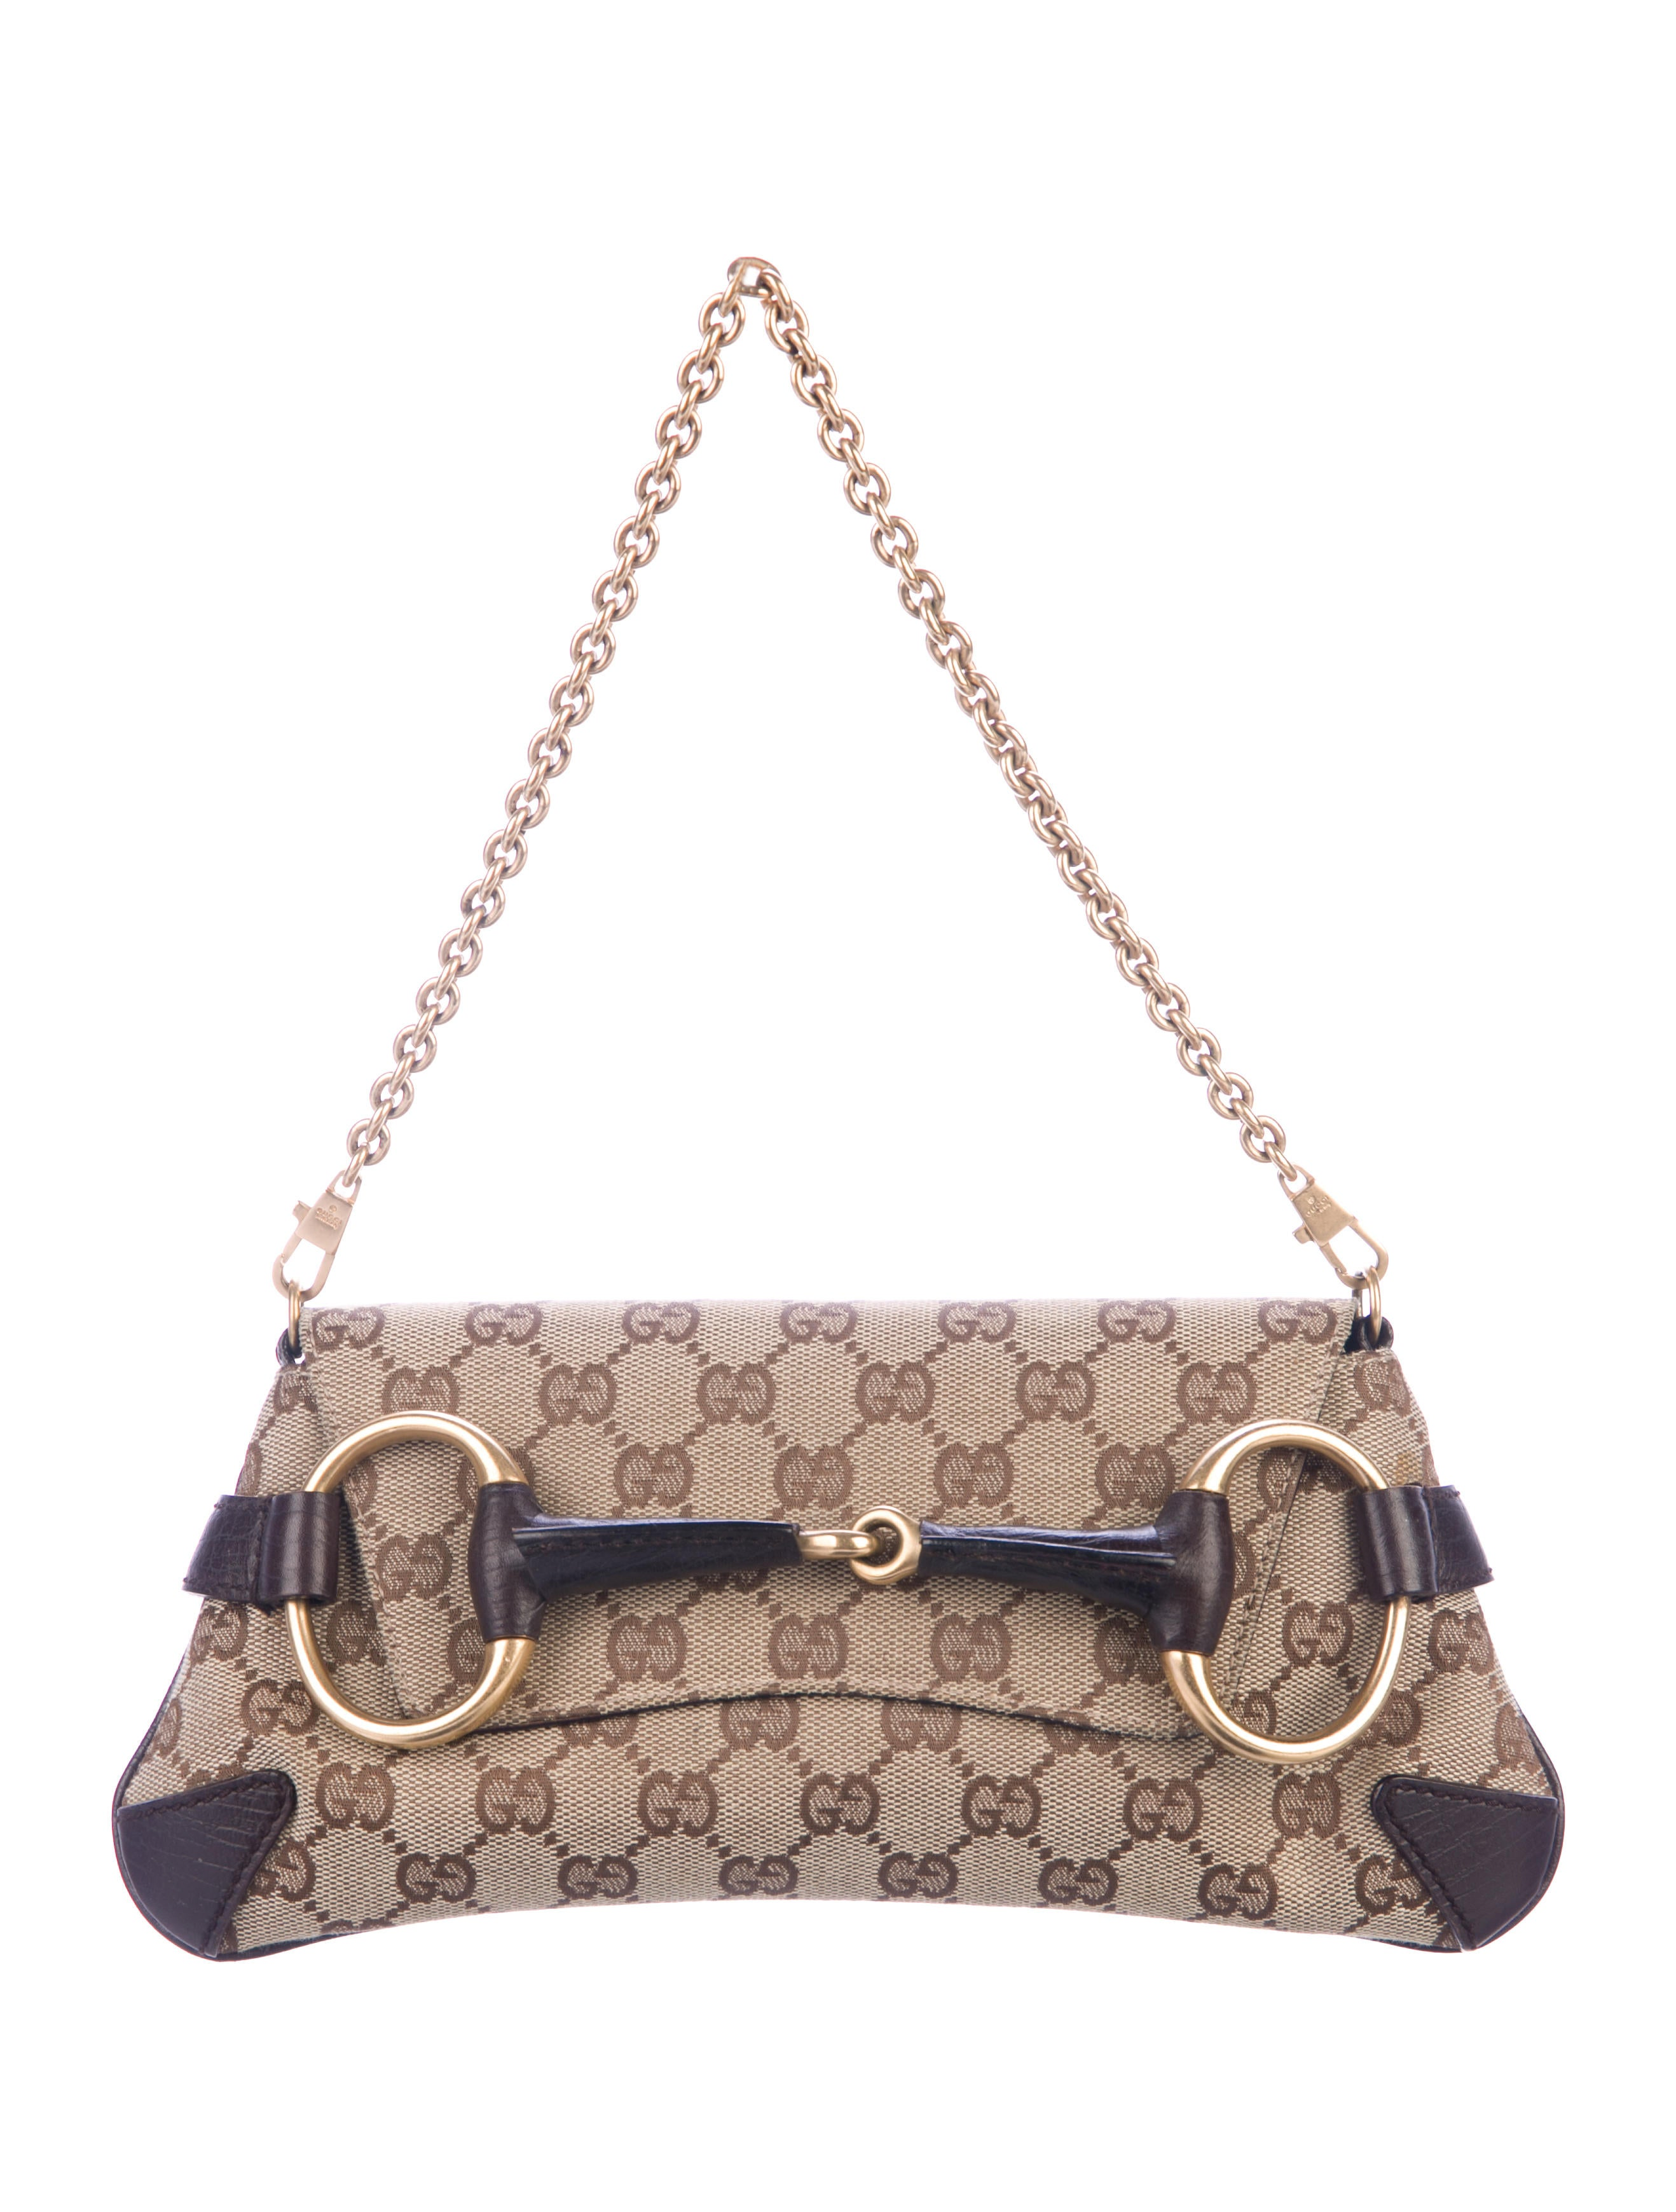 f080fca9b59 Gucci Small Horsebit Chain Clutch - Handbags - GUC312036 | The RealReal